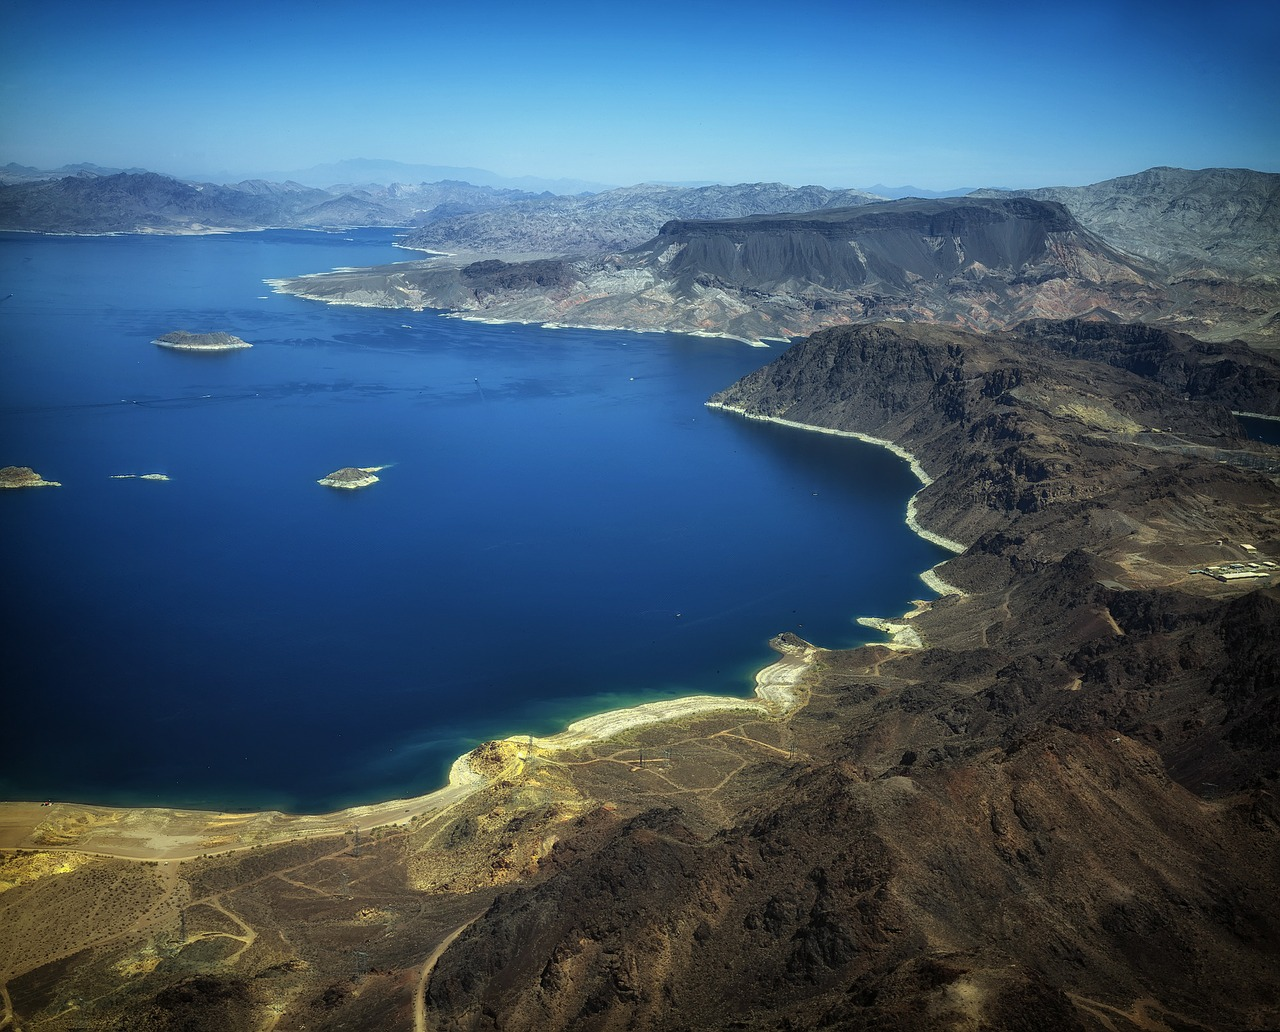 Take to the water in Lake Mead on this day trip from Las Vegas.